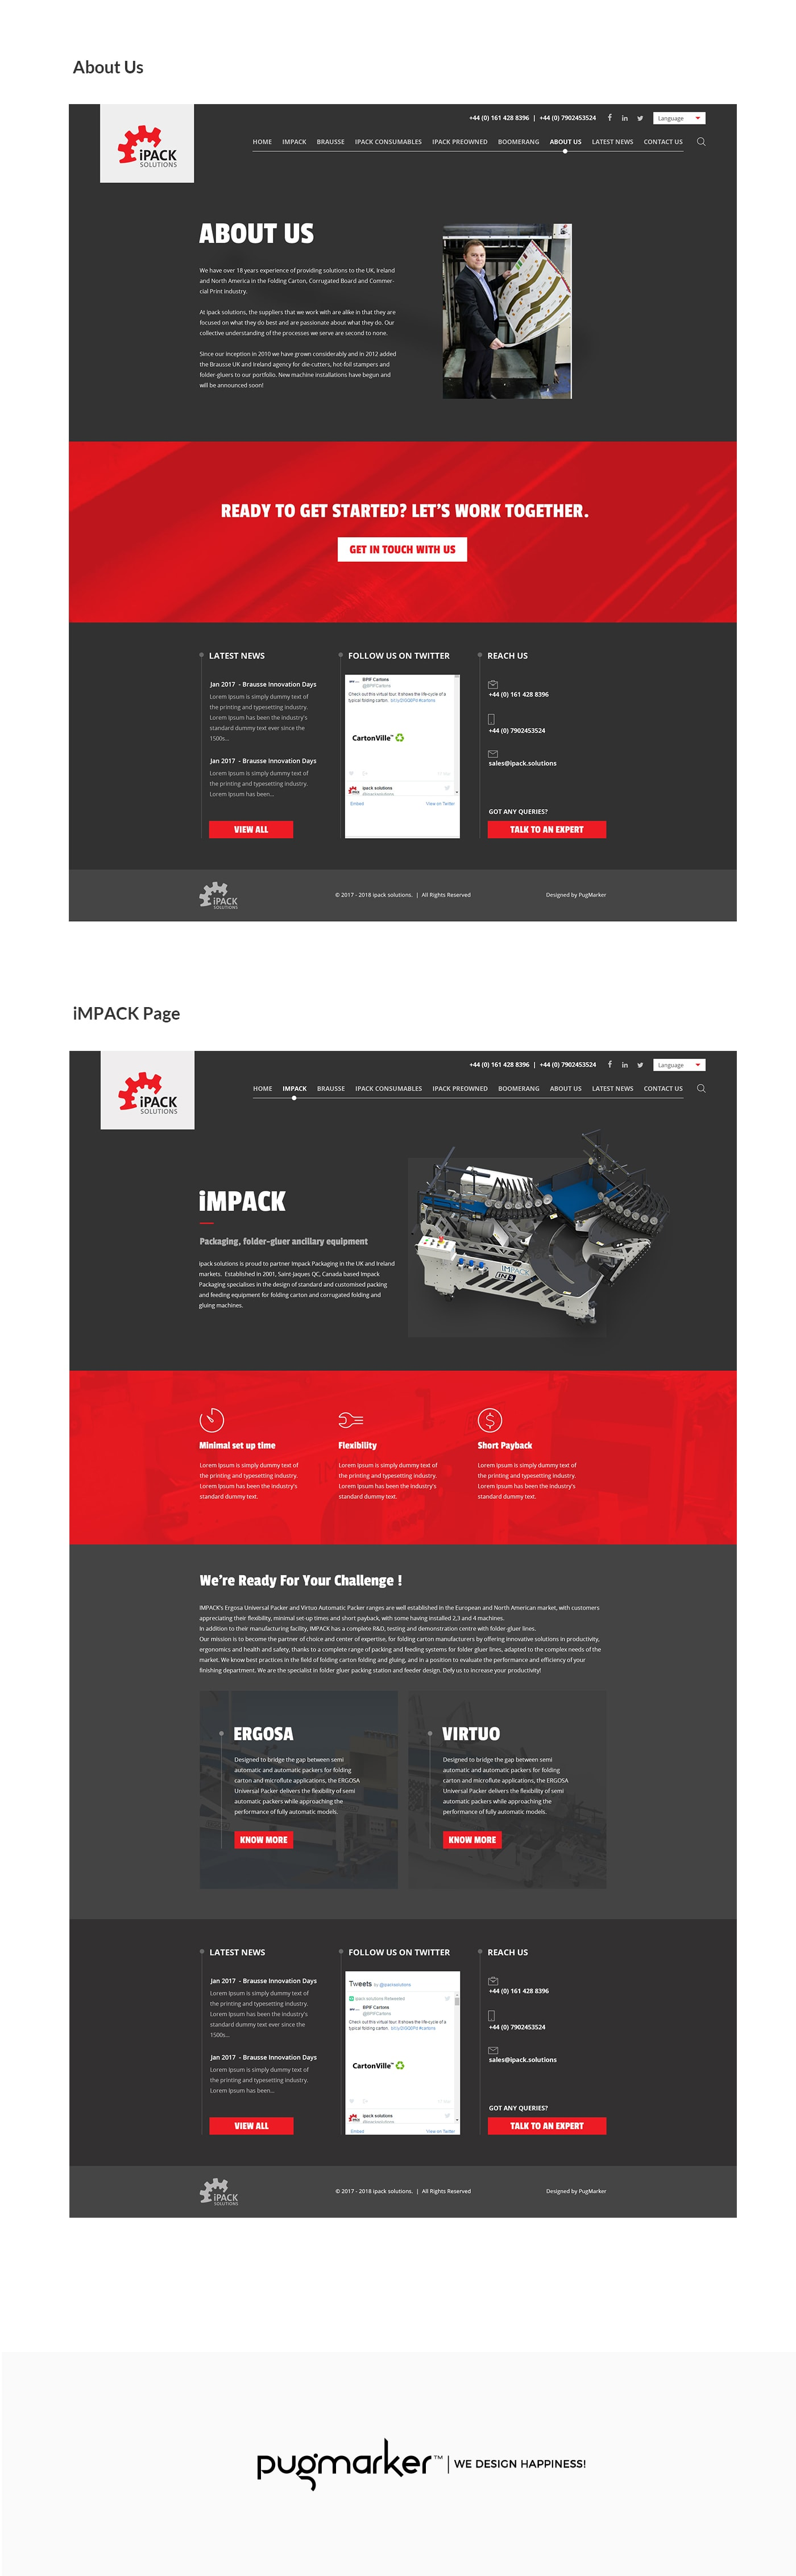 ipack solutions website about us page design